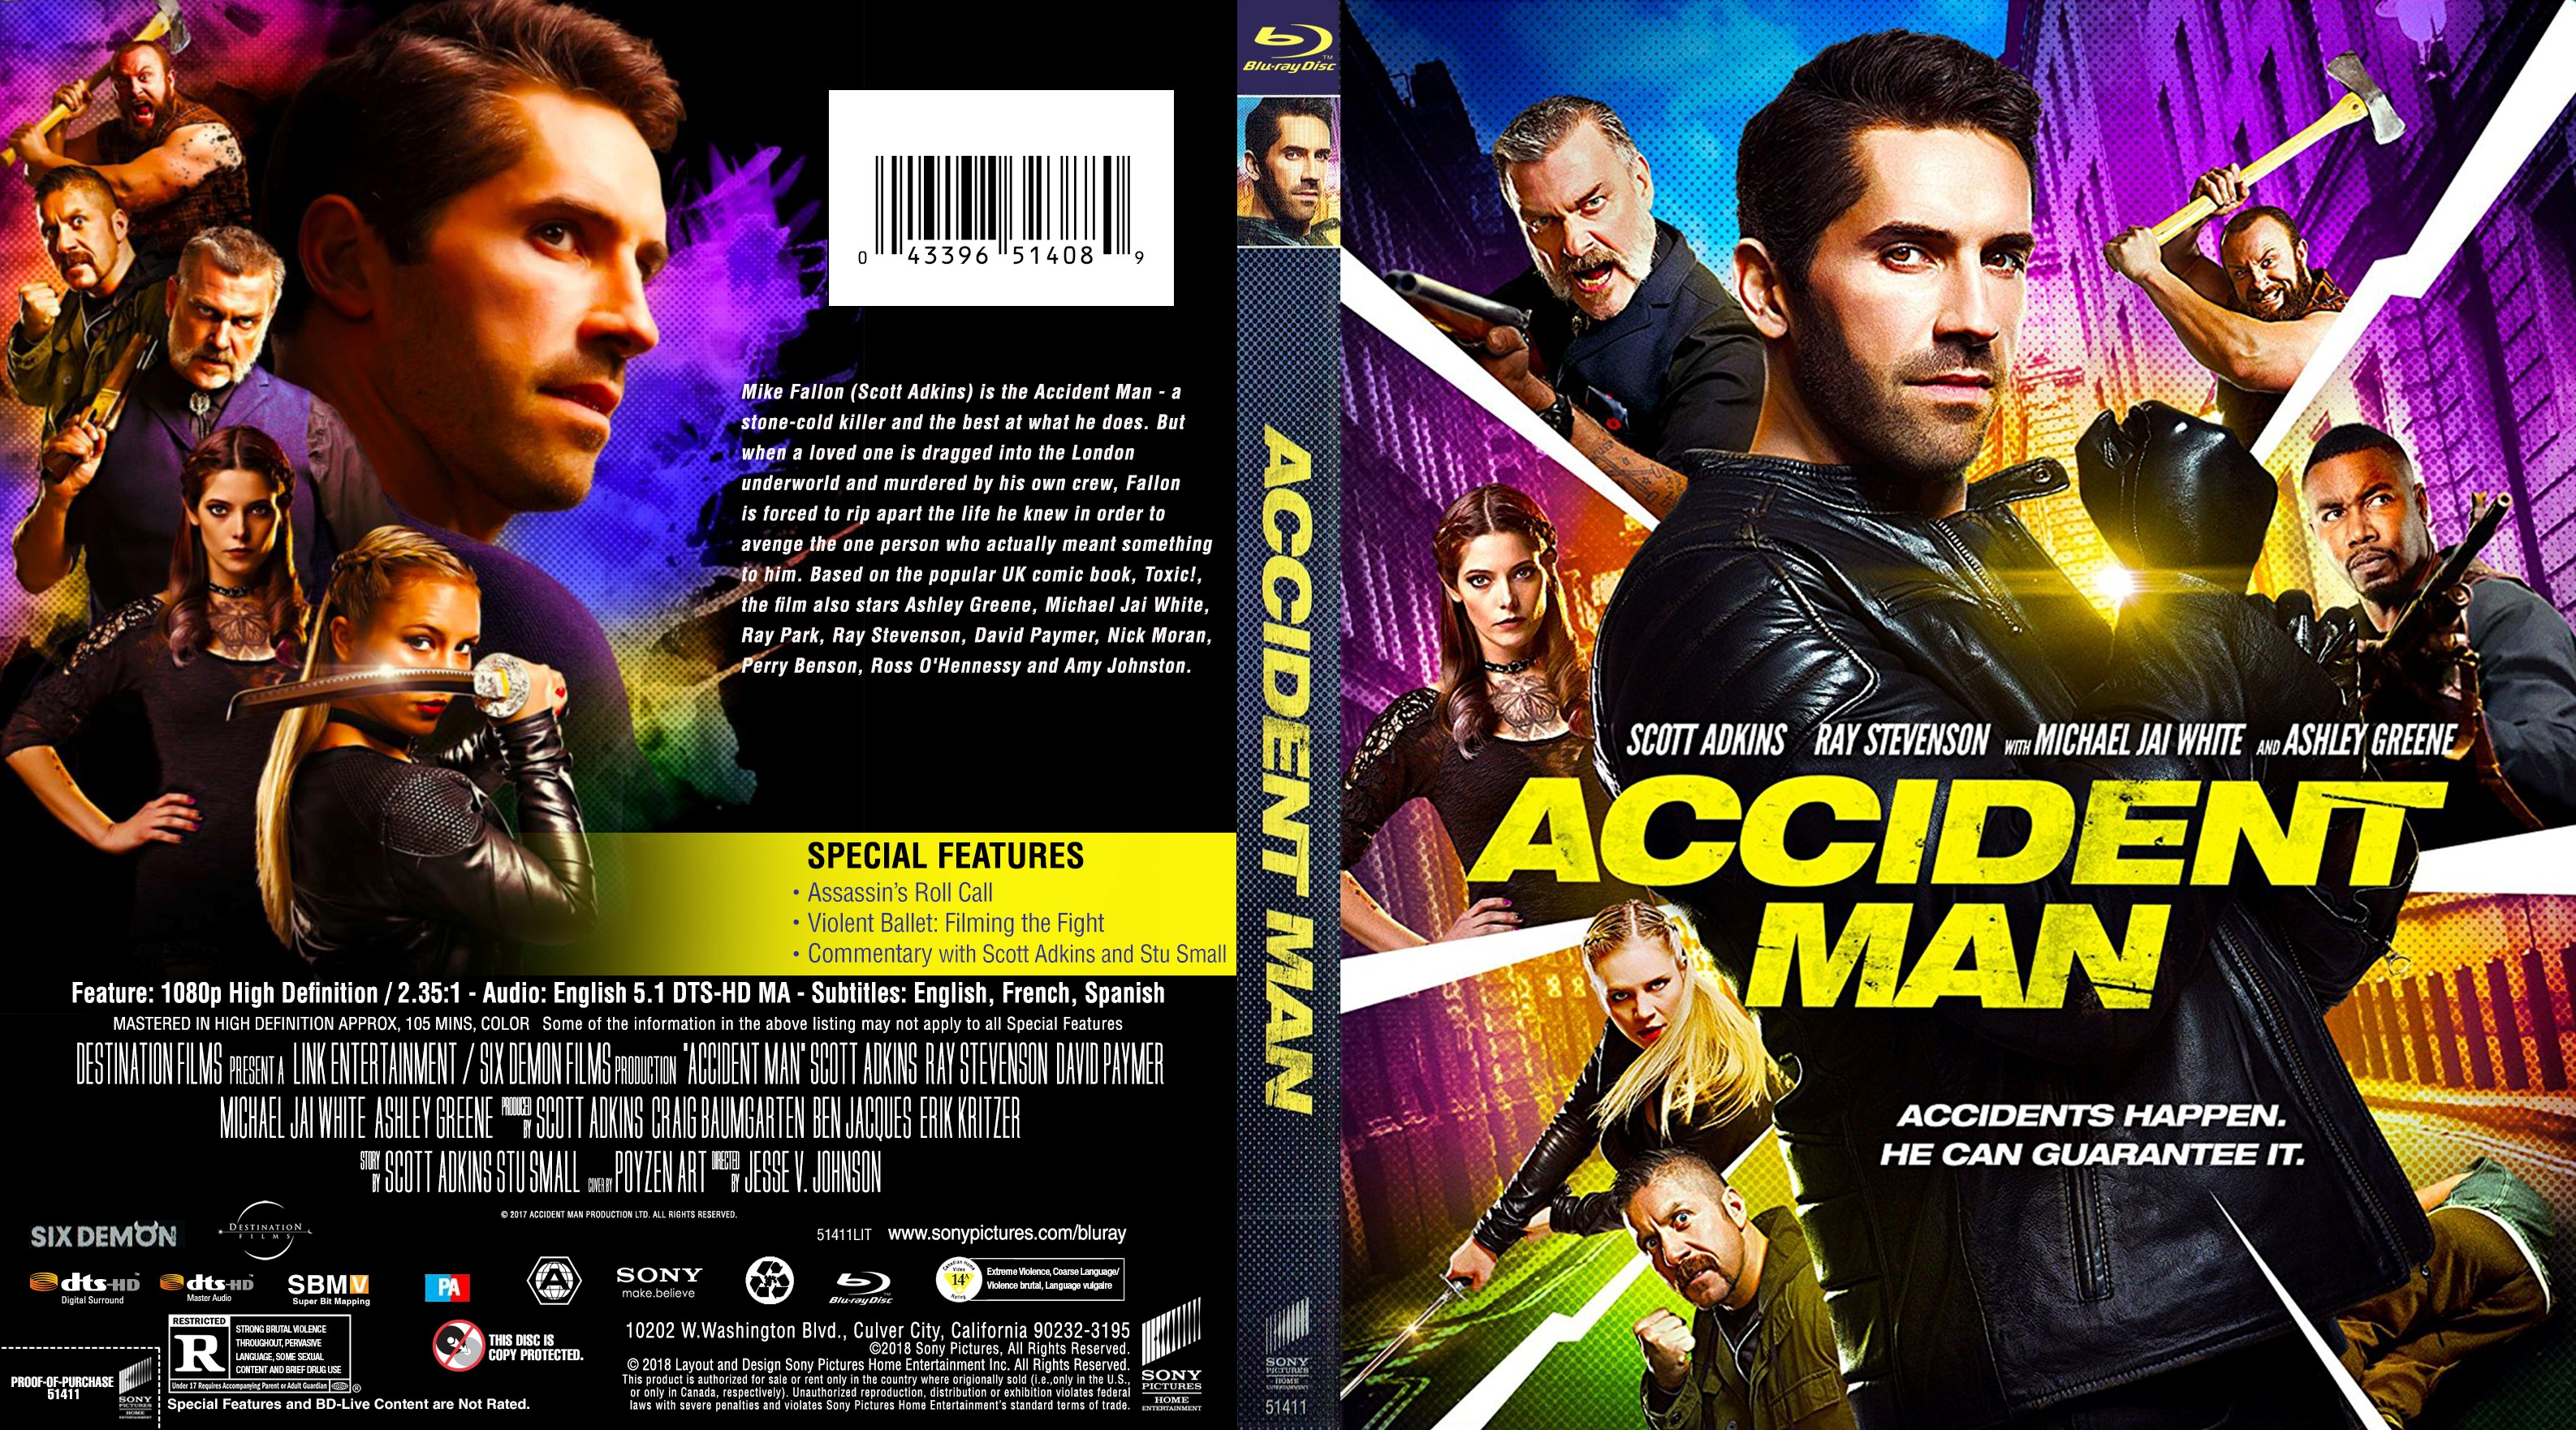 Accident Man Bluray Cover | Cover Addict - Free DVD, Bluray